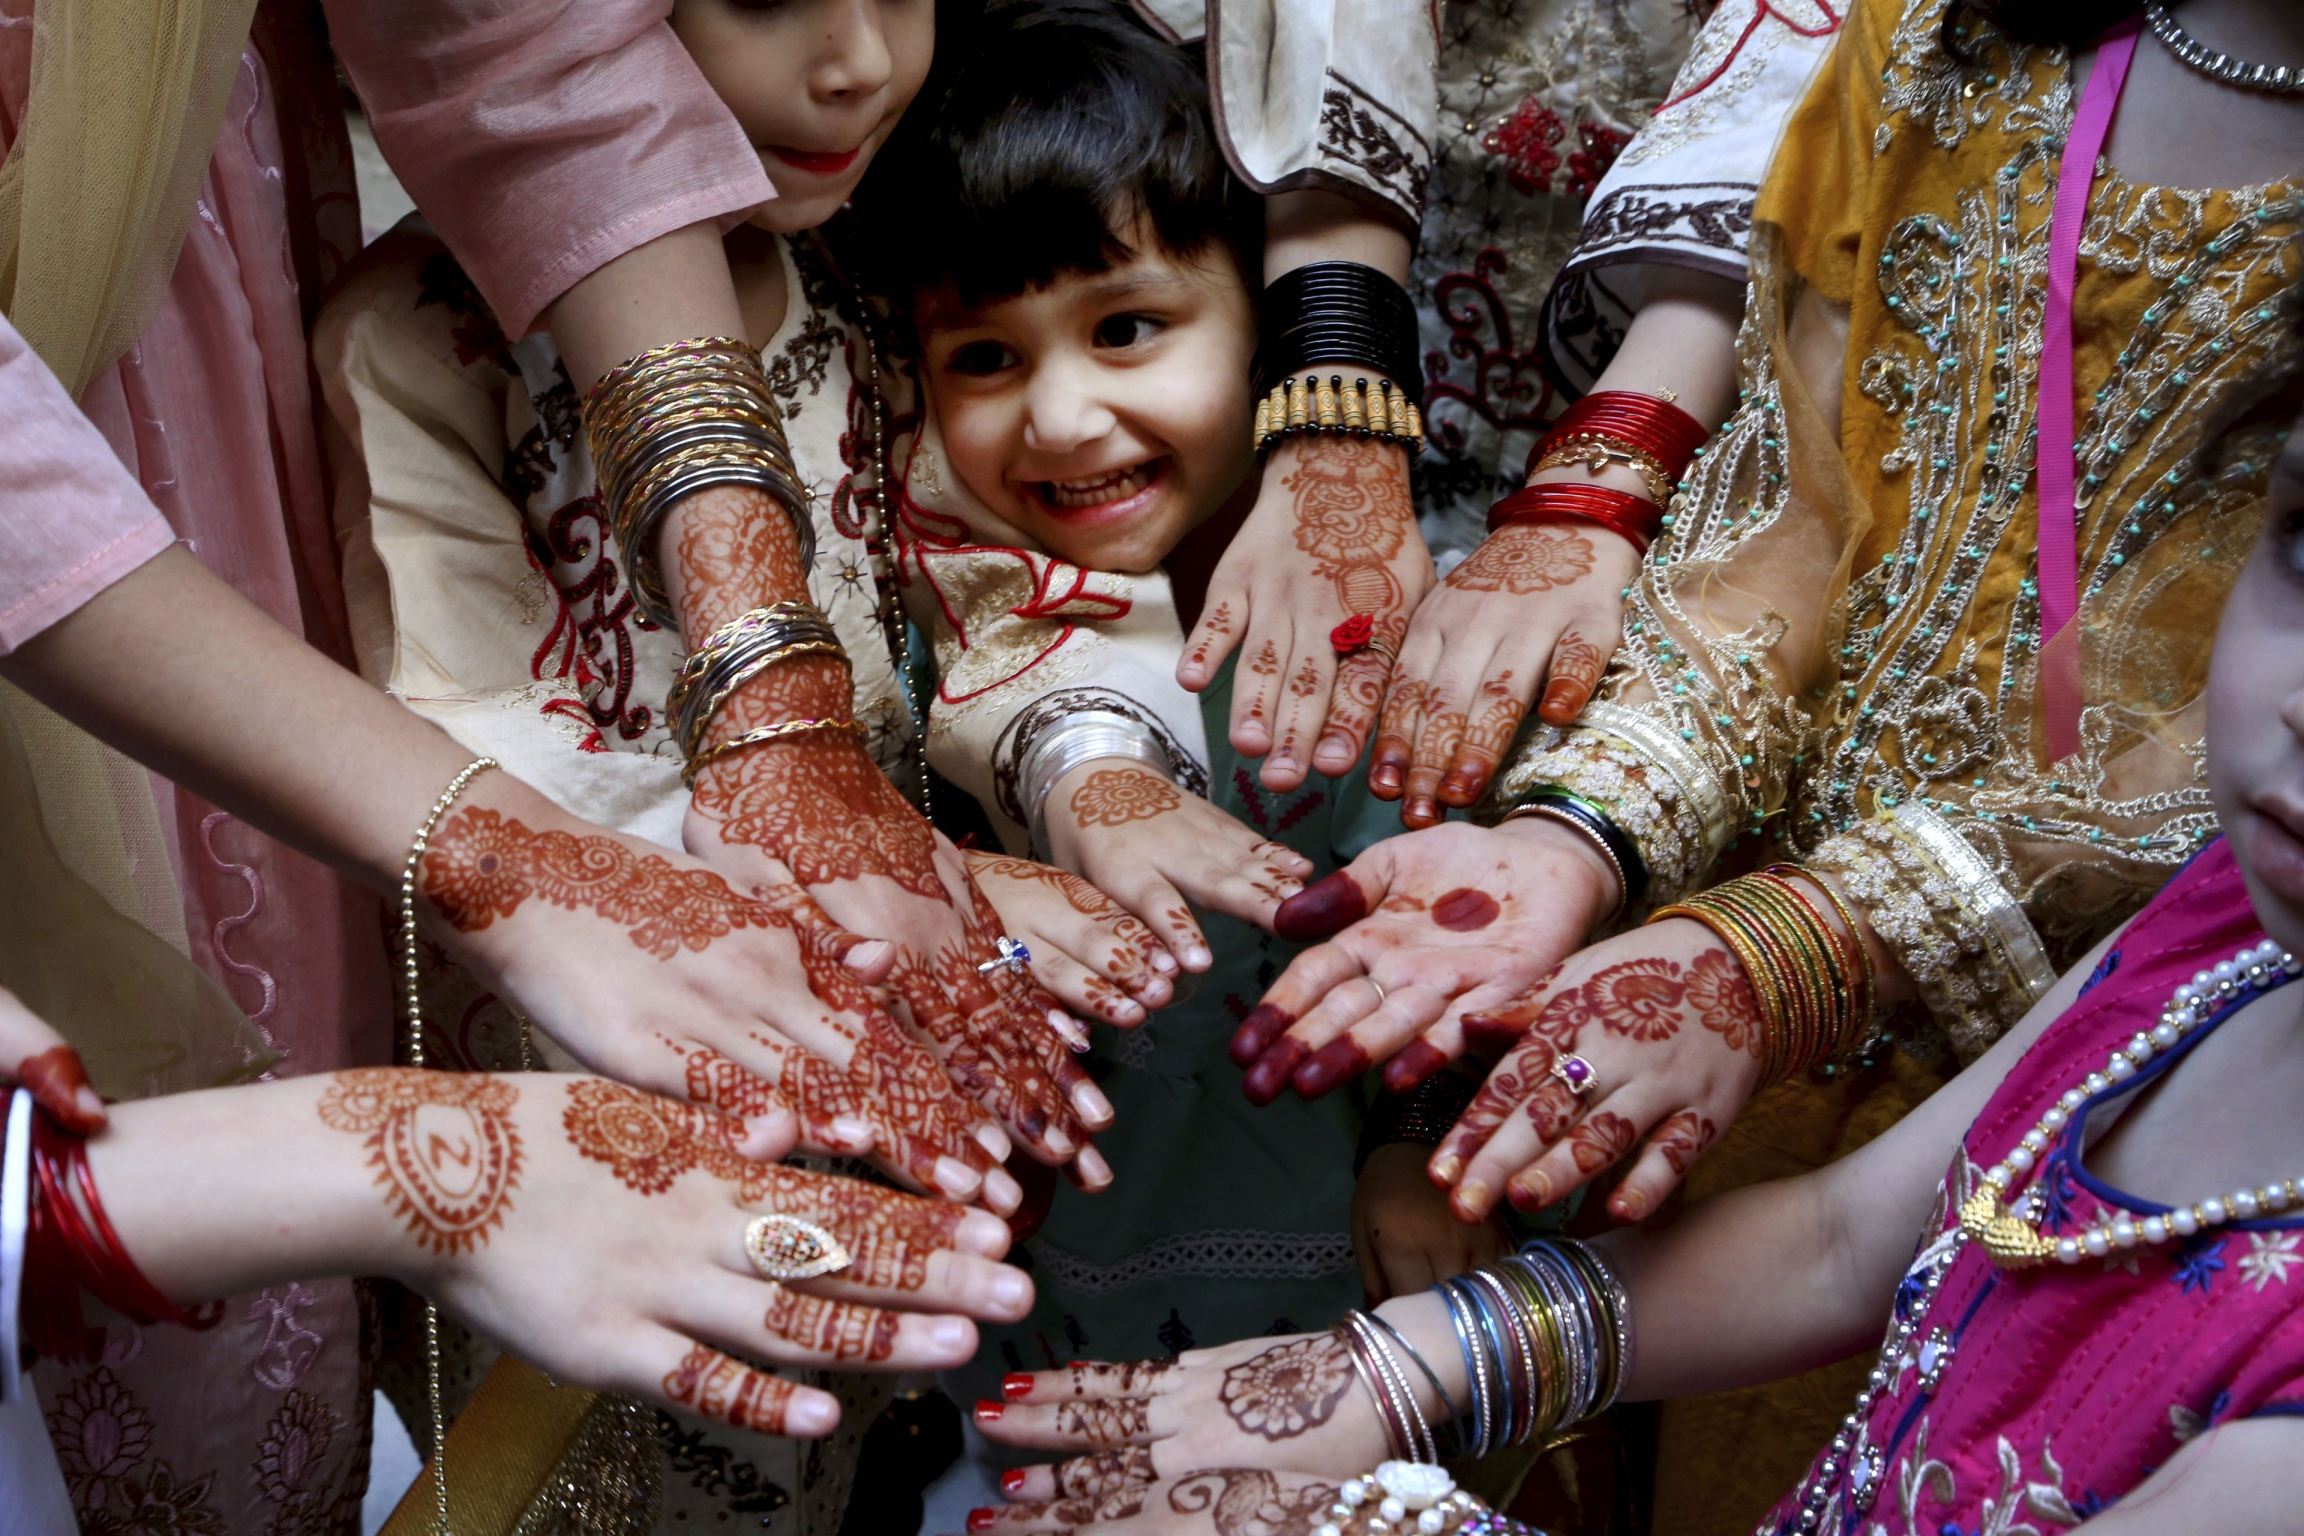 Muslimgirls display their hands painted with traditional henna to celebrate Eid al-Fitr holidays, marking the end of the fasting month of Ramadan, in Peshawar, Pakistan.